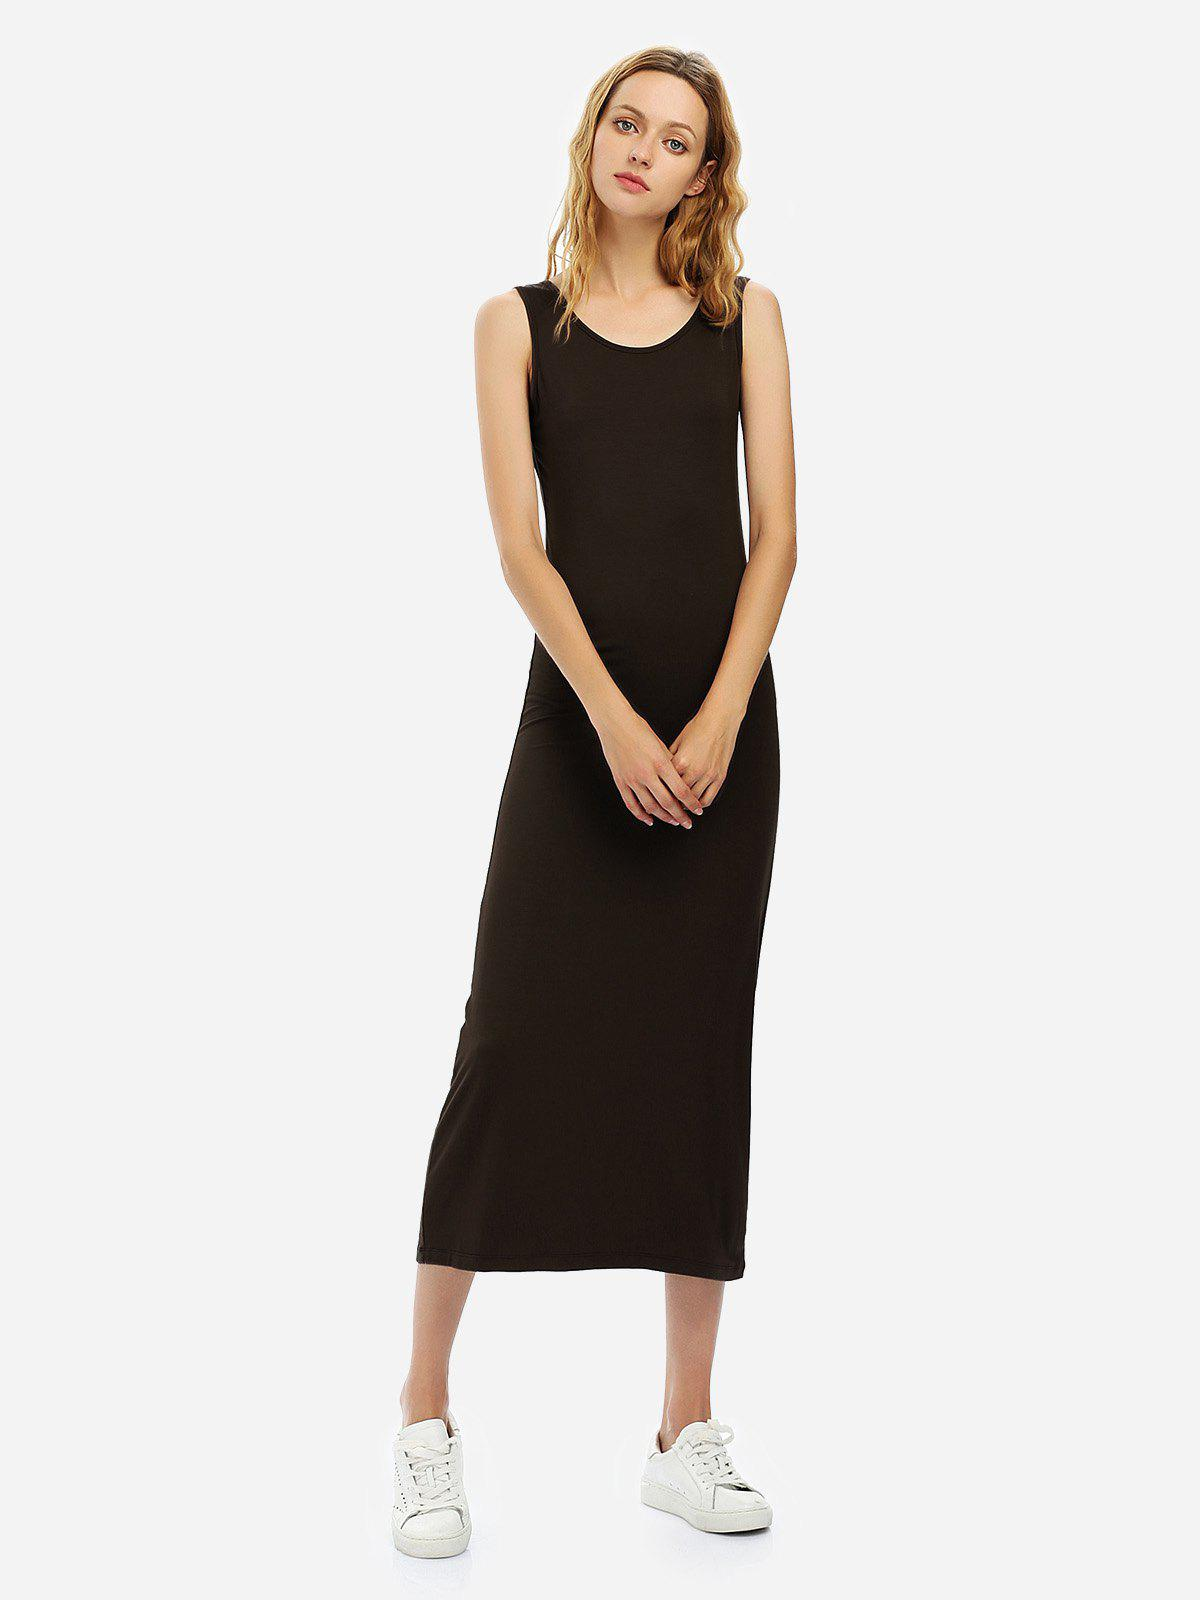 ZAN.STYLE Crew Neck Sleeveless Dress - COFFEE XL